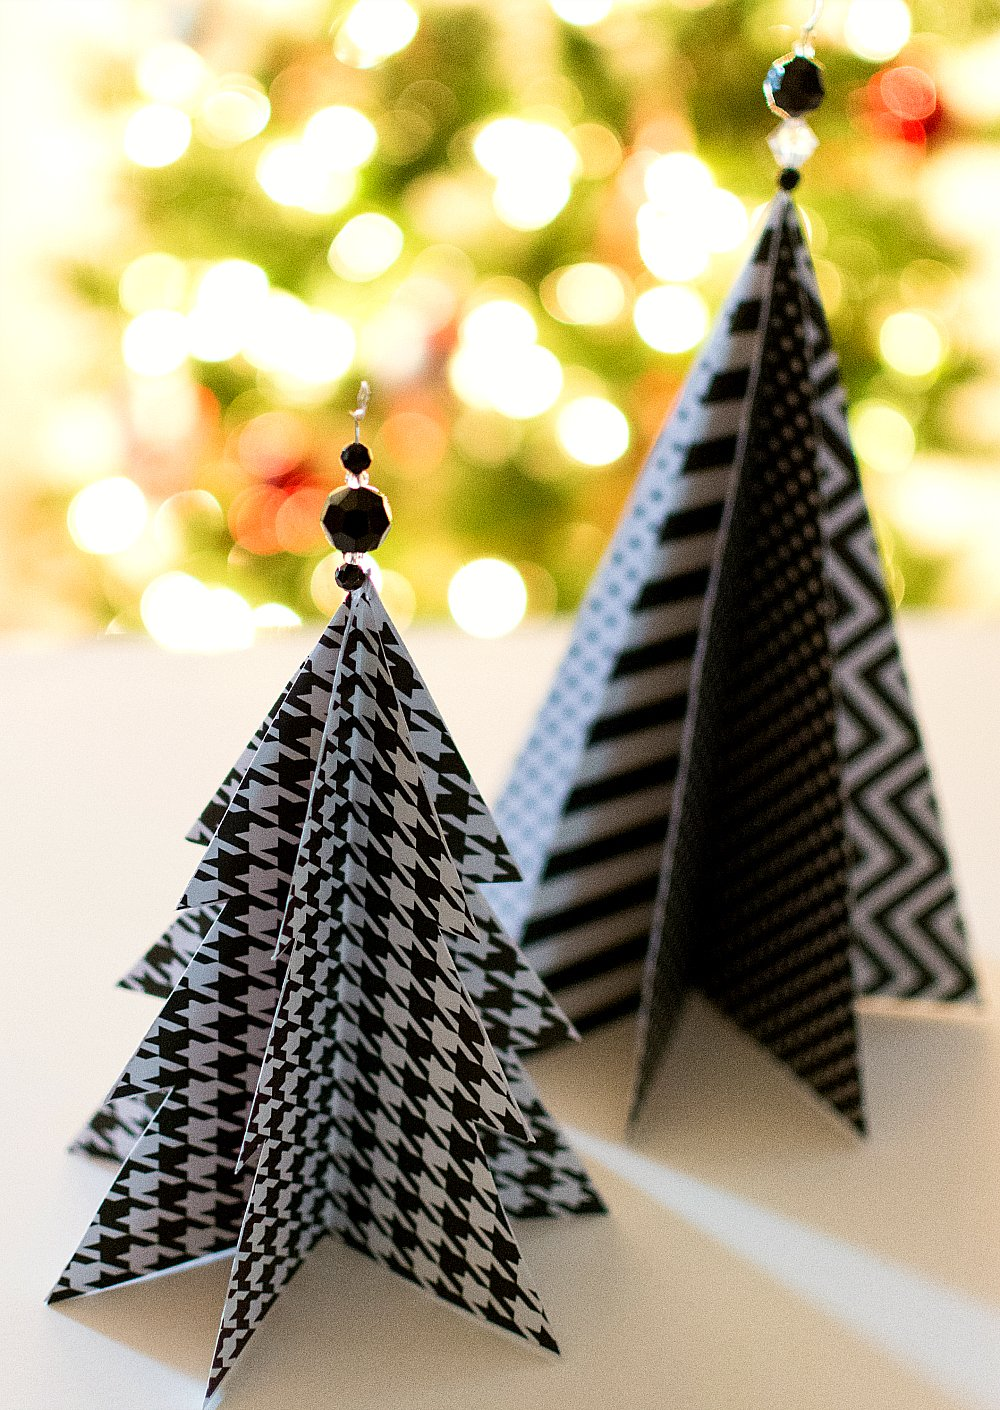 50 Diy Mini Christmas Trees  Prudent Penny Pincher. Kitchen Design Accessories. Kitchen Design Red And White. Signature Kitchen And Bath Design. Functional Kitchen Design. Brown And White Kitchen Designs. Universal Design Kitchen Cabinets. Kitchen Design Color Schemes. Kitchen Country Design